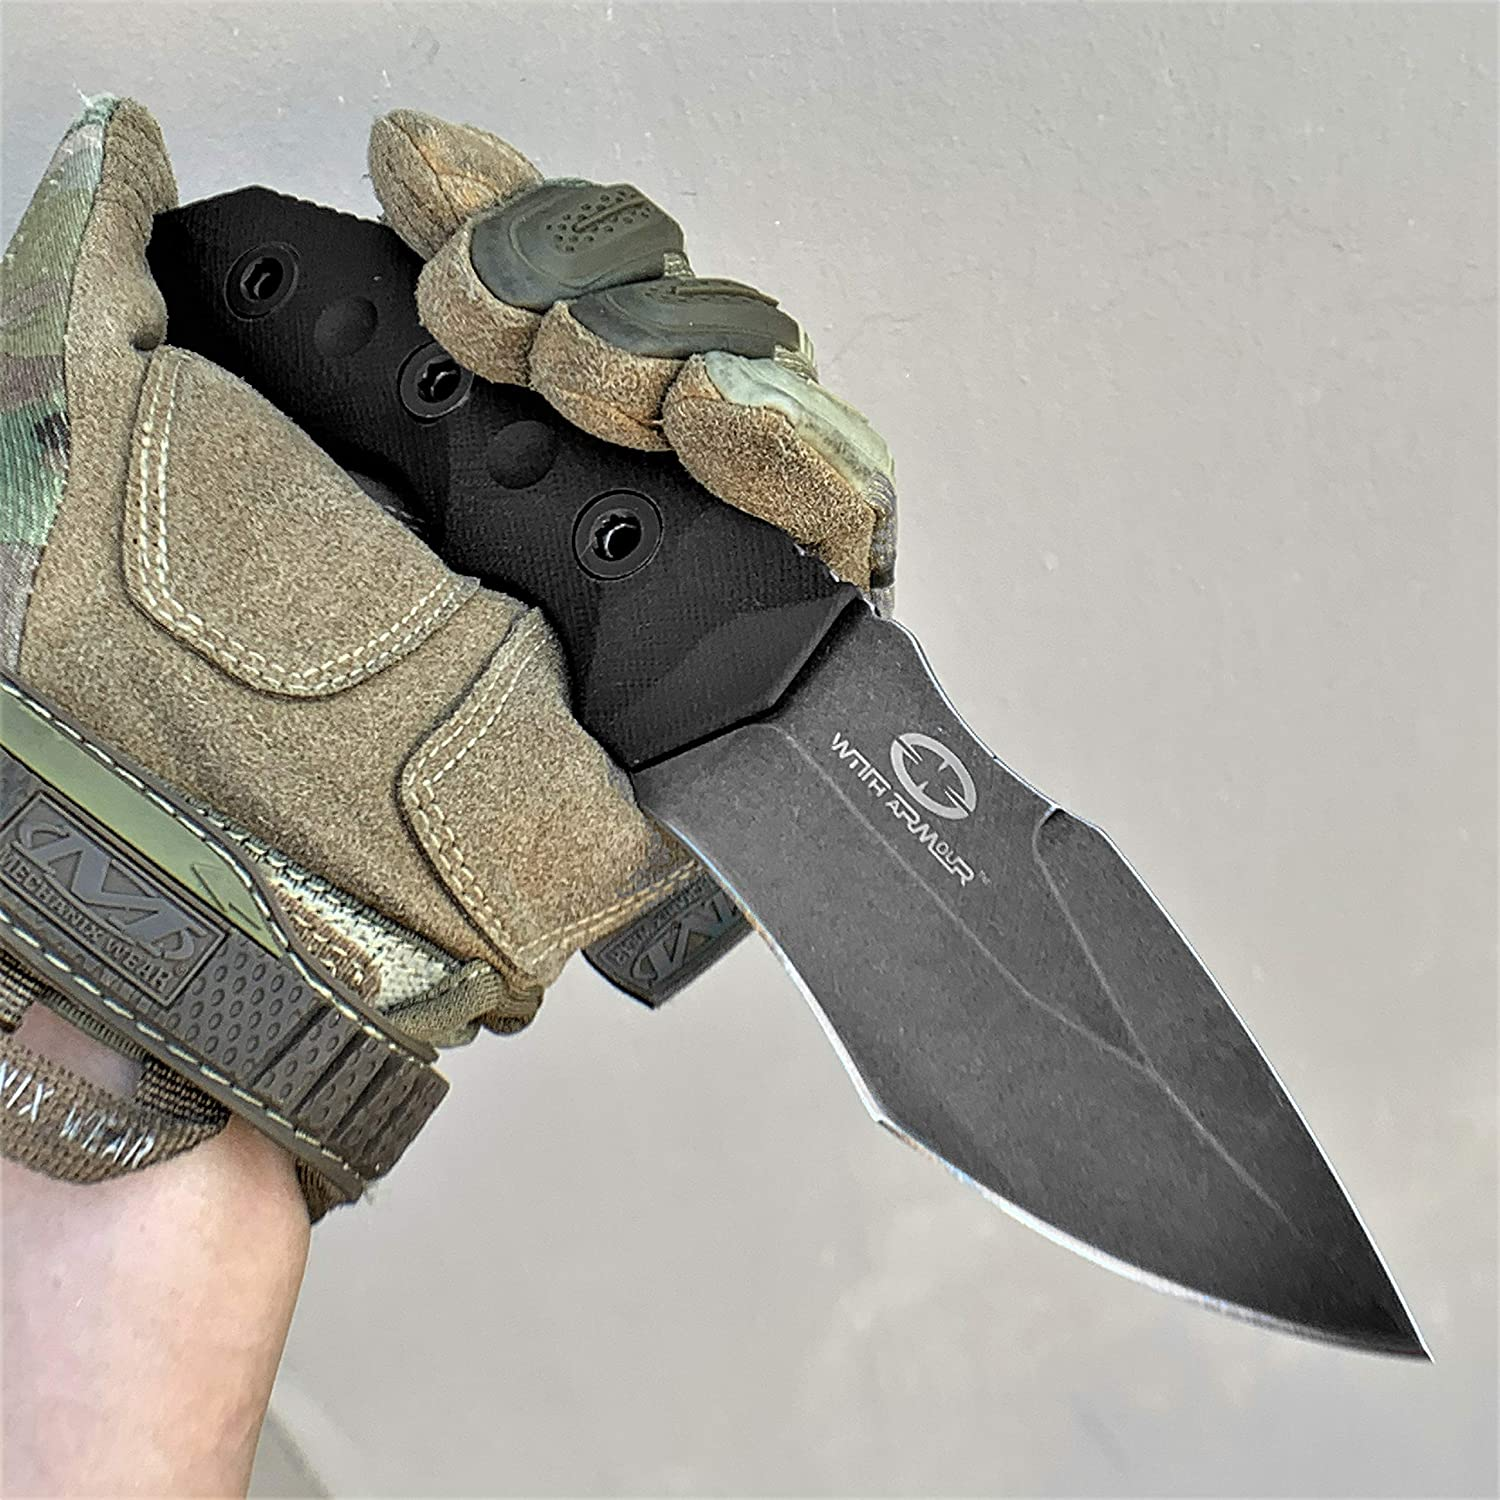 KCCEDGE BEST CUTLERY SOURCE Tactical Knife Hunting Knife Survival Knife 9